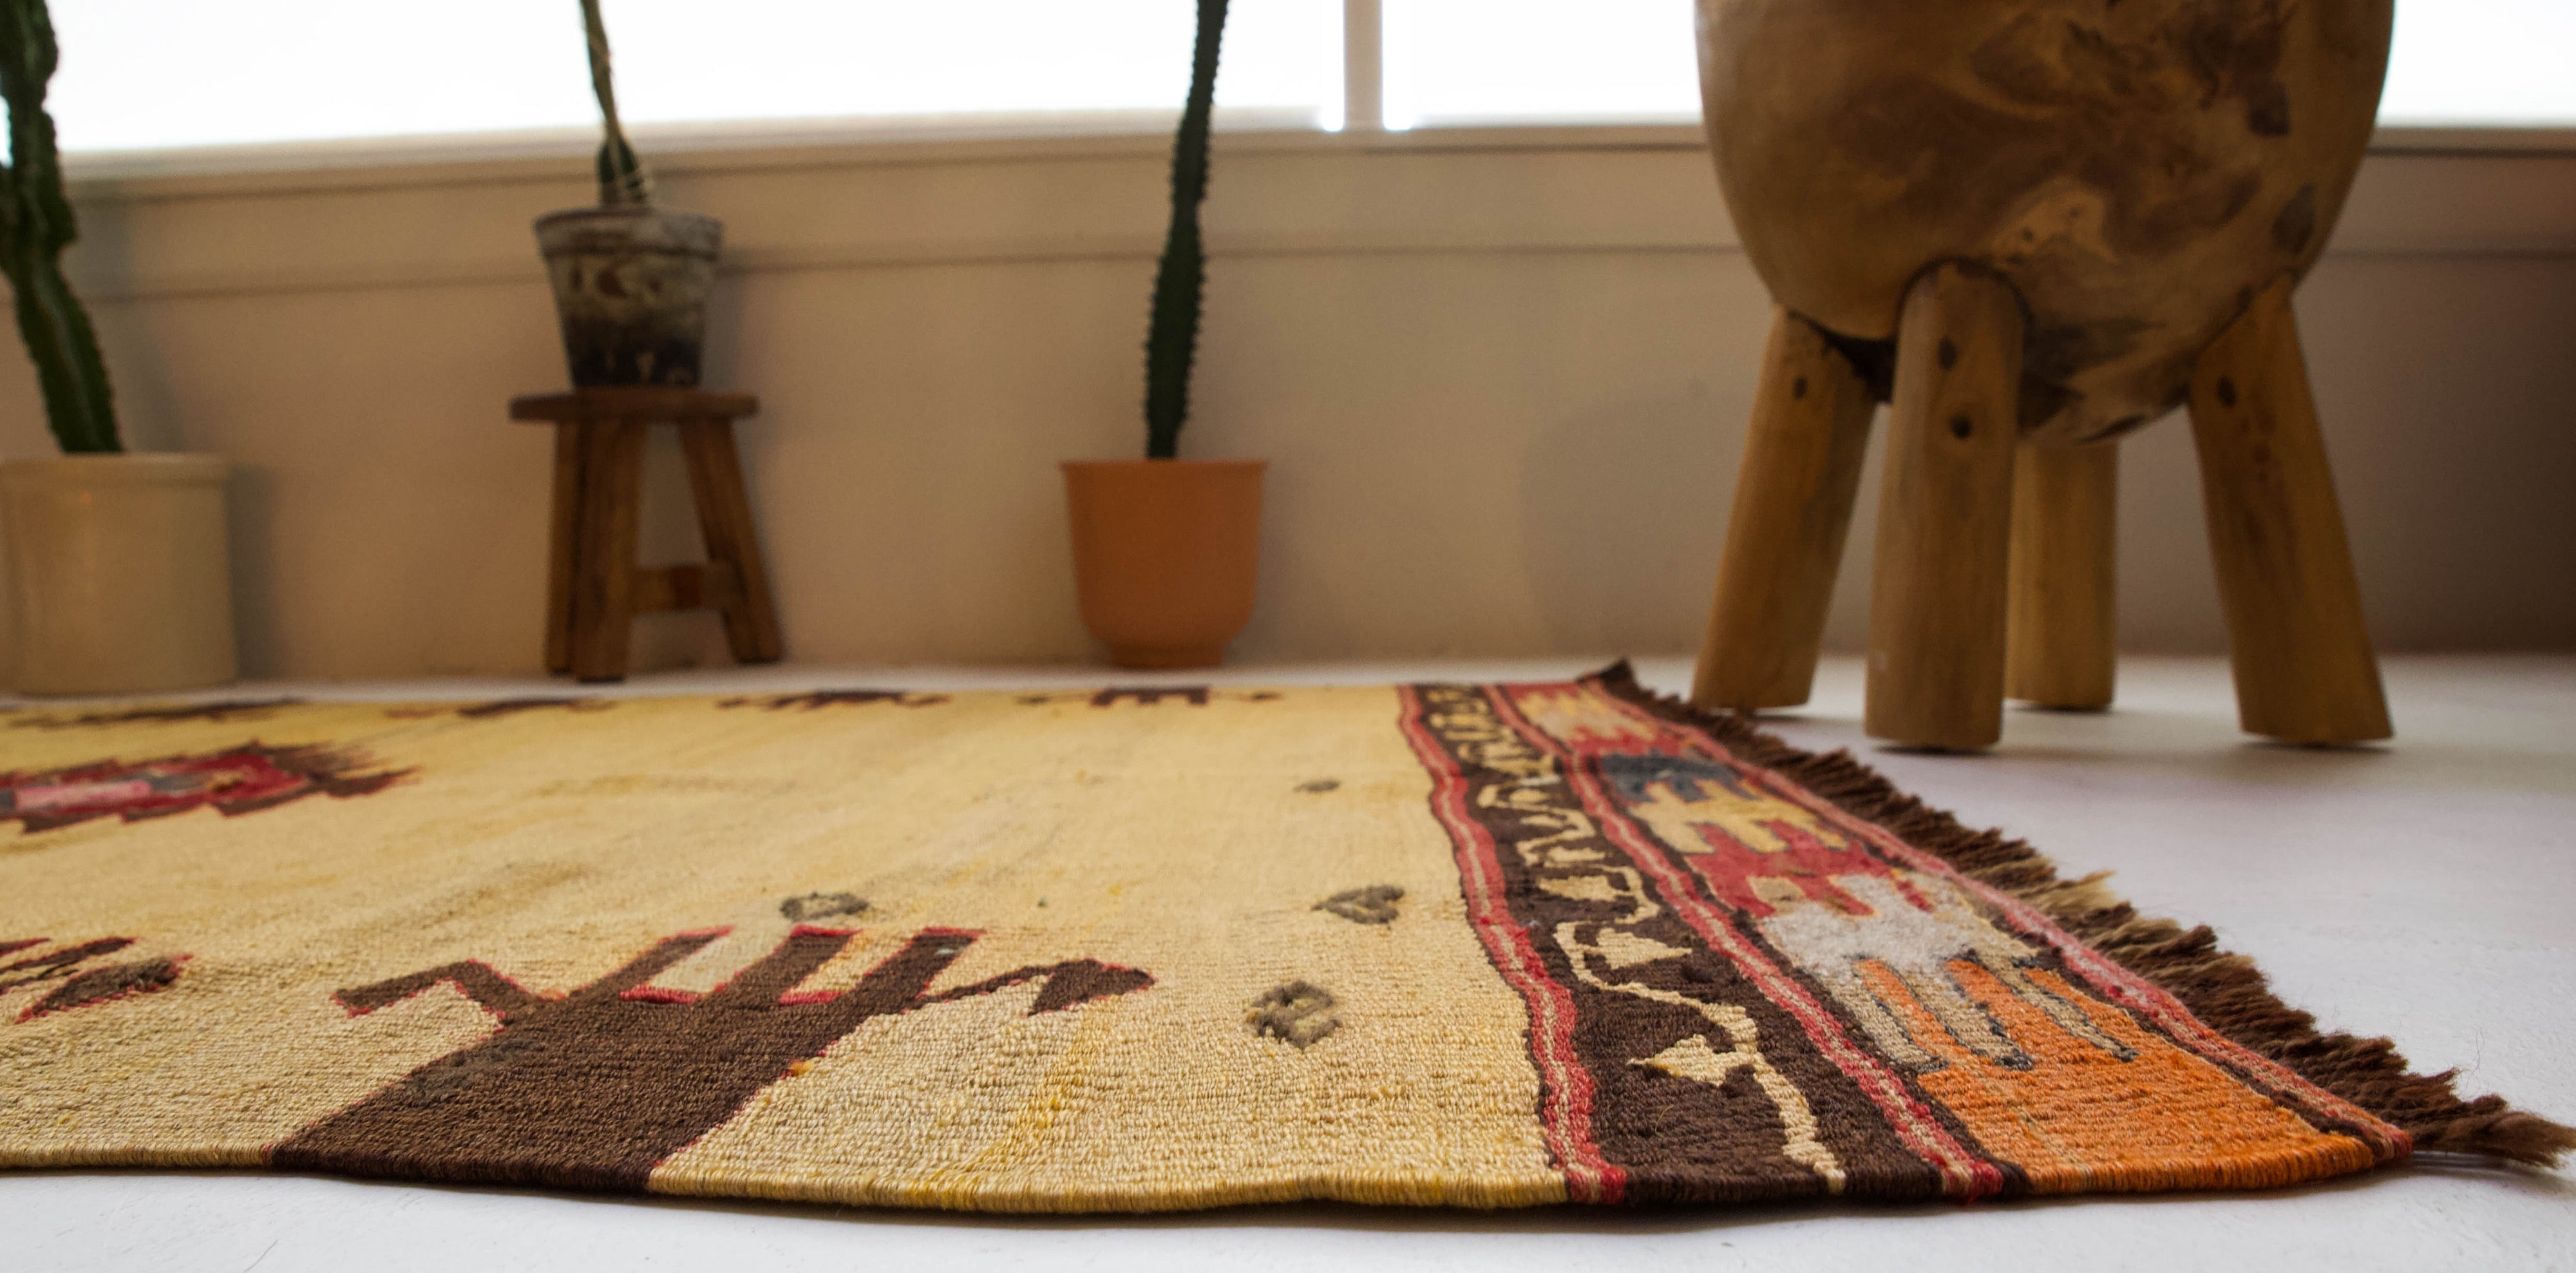 Vintage kilim rug in room decor setting, kilim, Turkish rug, vintage rug, portland, rug shop, bright colors, wild shaman, bold color, Portland, Oregon, rug store, rug shop, local shop, antique rug